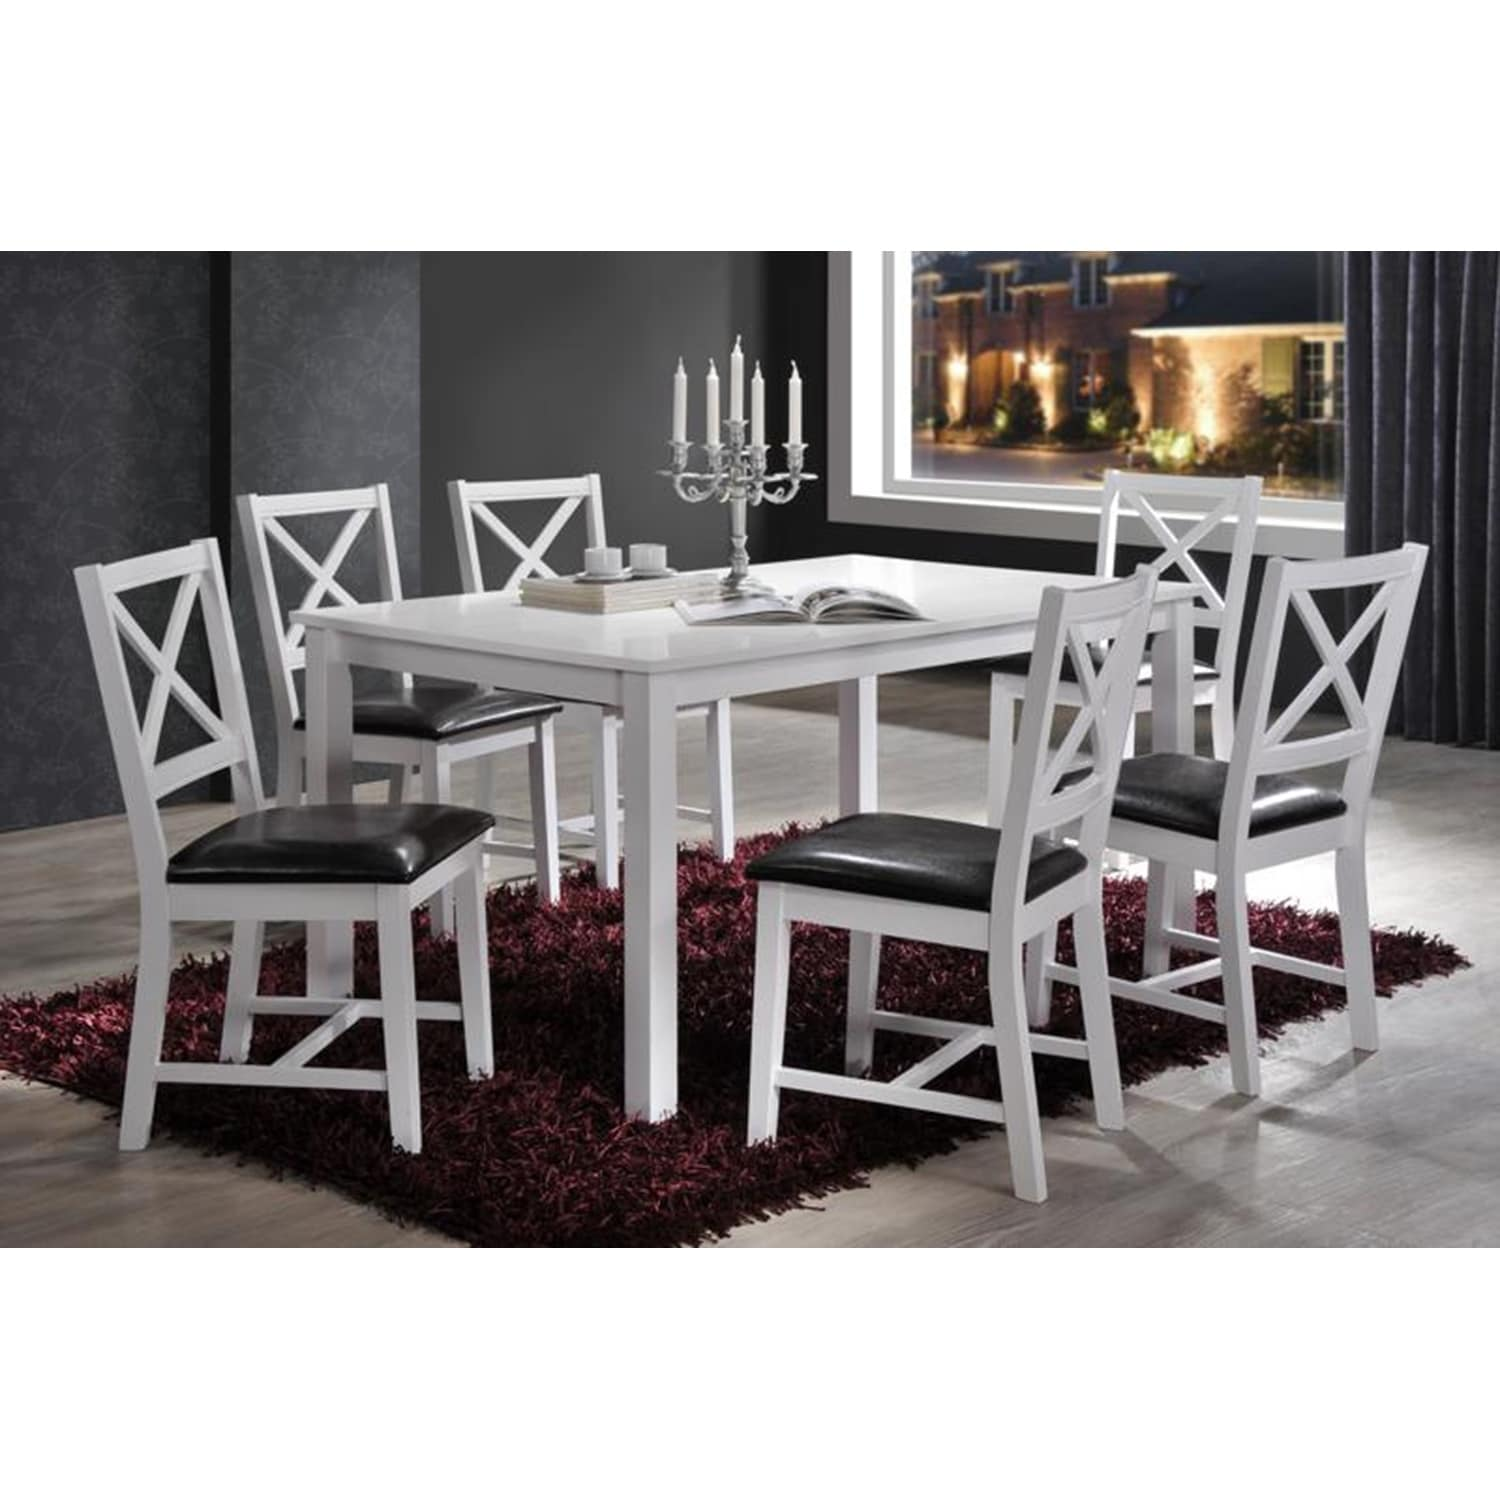 Shop Indoor White and Black Cross-Back 7pc Dining Set with a Solid